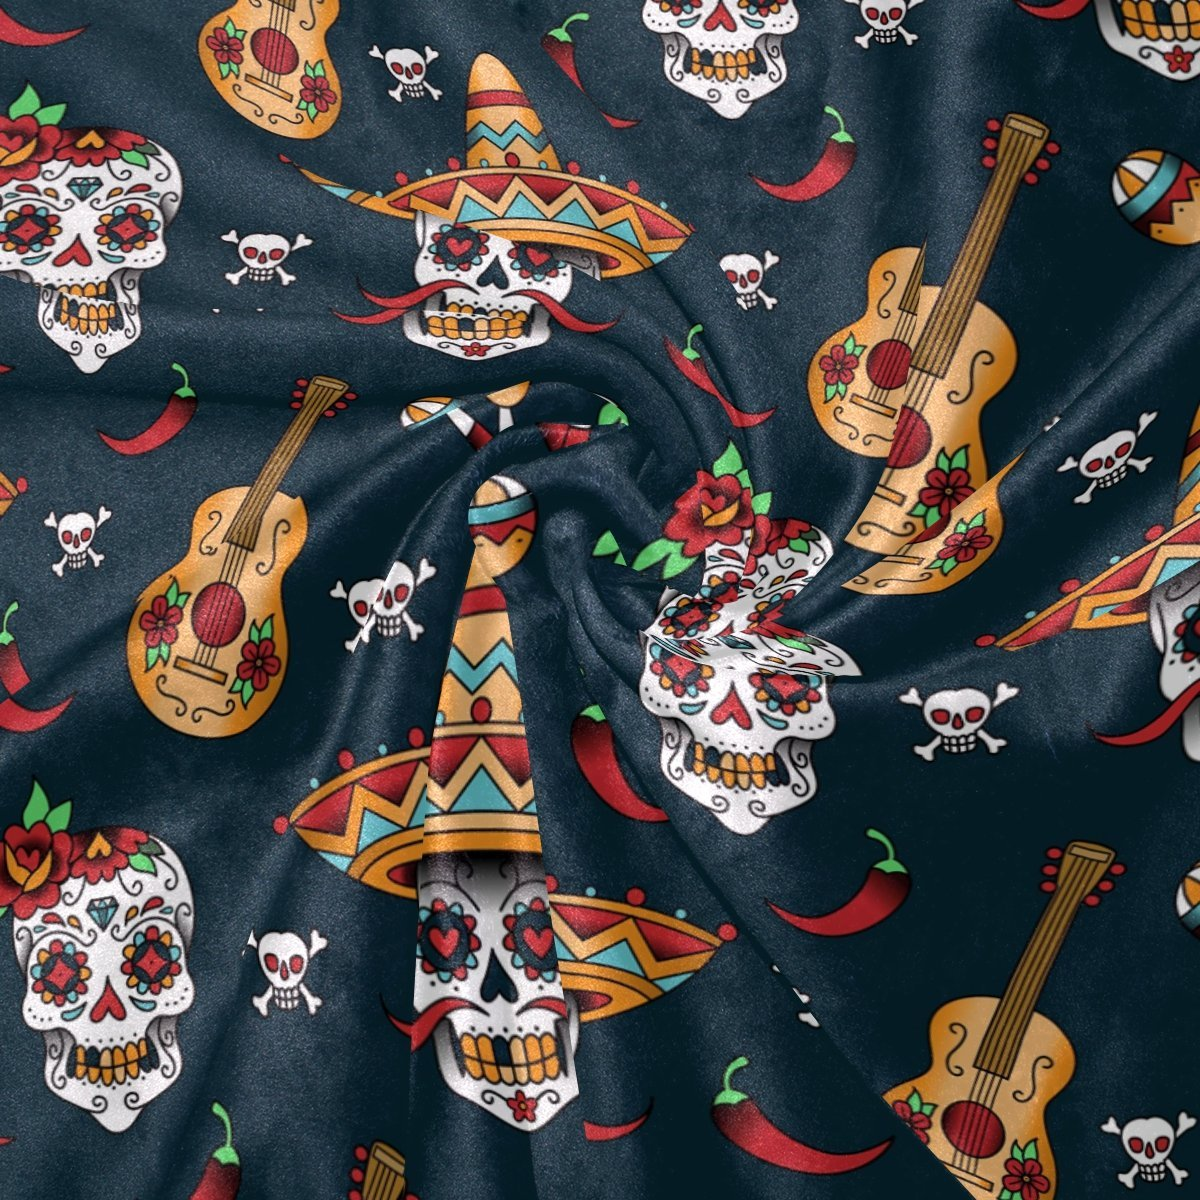 Halloween Mexican Floral Sugar Skull Guitar Music Blanket Soft Warm Cozy Bed Couch Lightweight Polyester Microfiber Blanket in Blankets from Home Garden